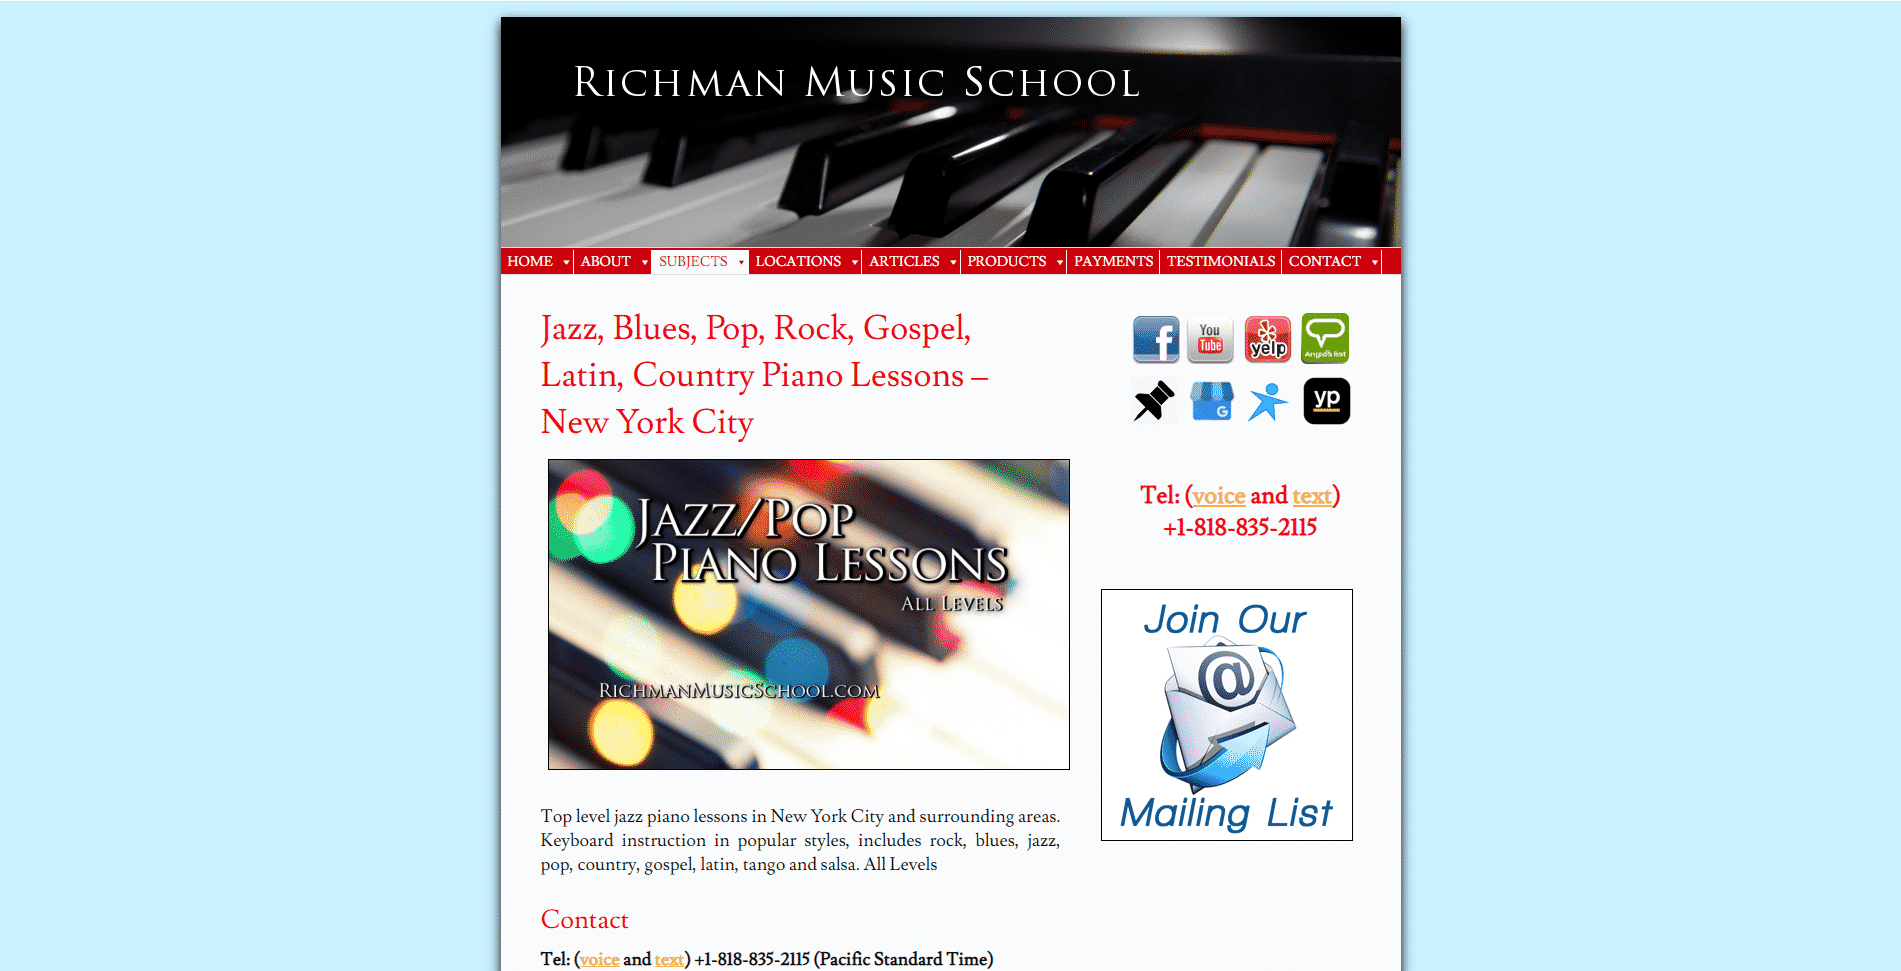 Richman Music School